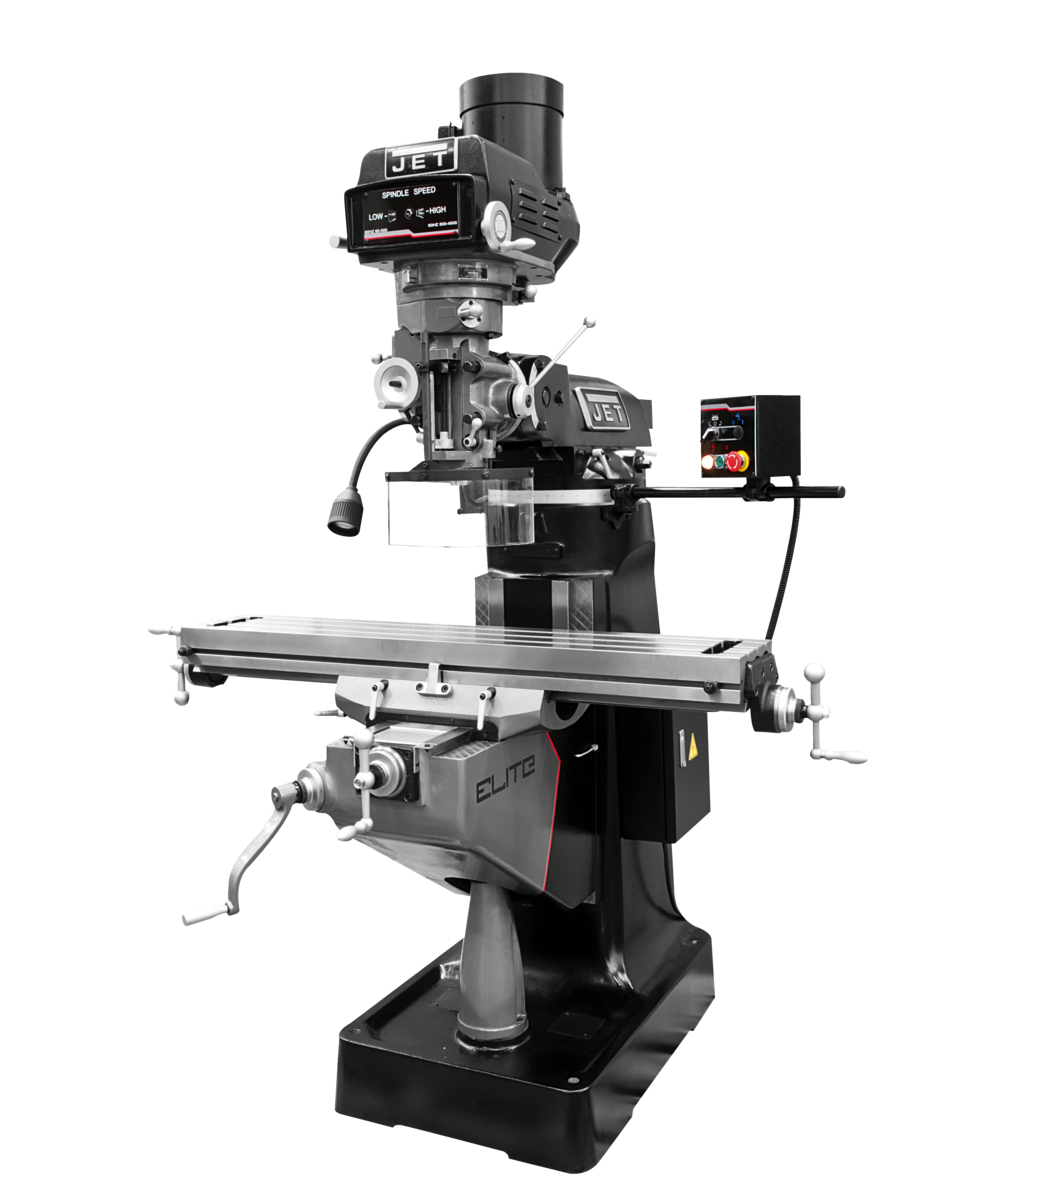 ETM-949 Mill with 2-Axis ACU-RITE 303 DRO and X, Y, Z-Axis JET Powerfeeds and USA Made Air Draw Bar